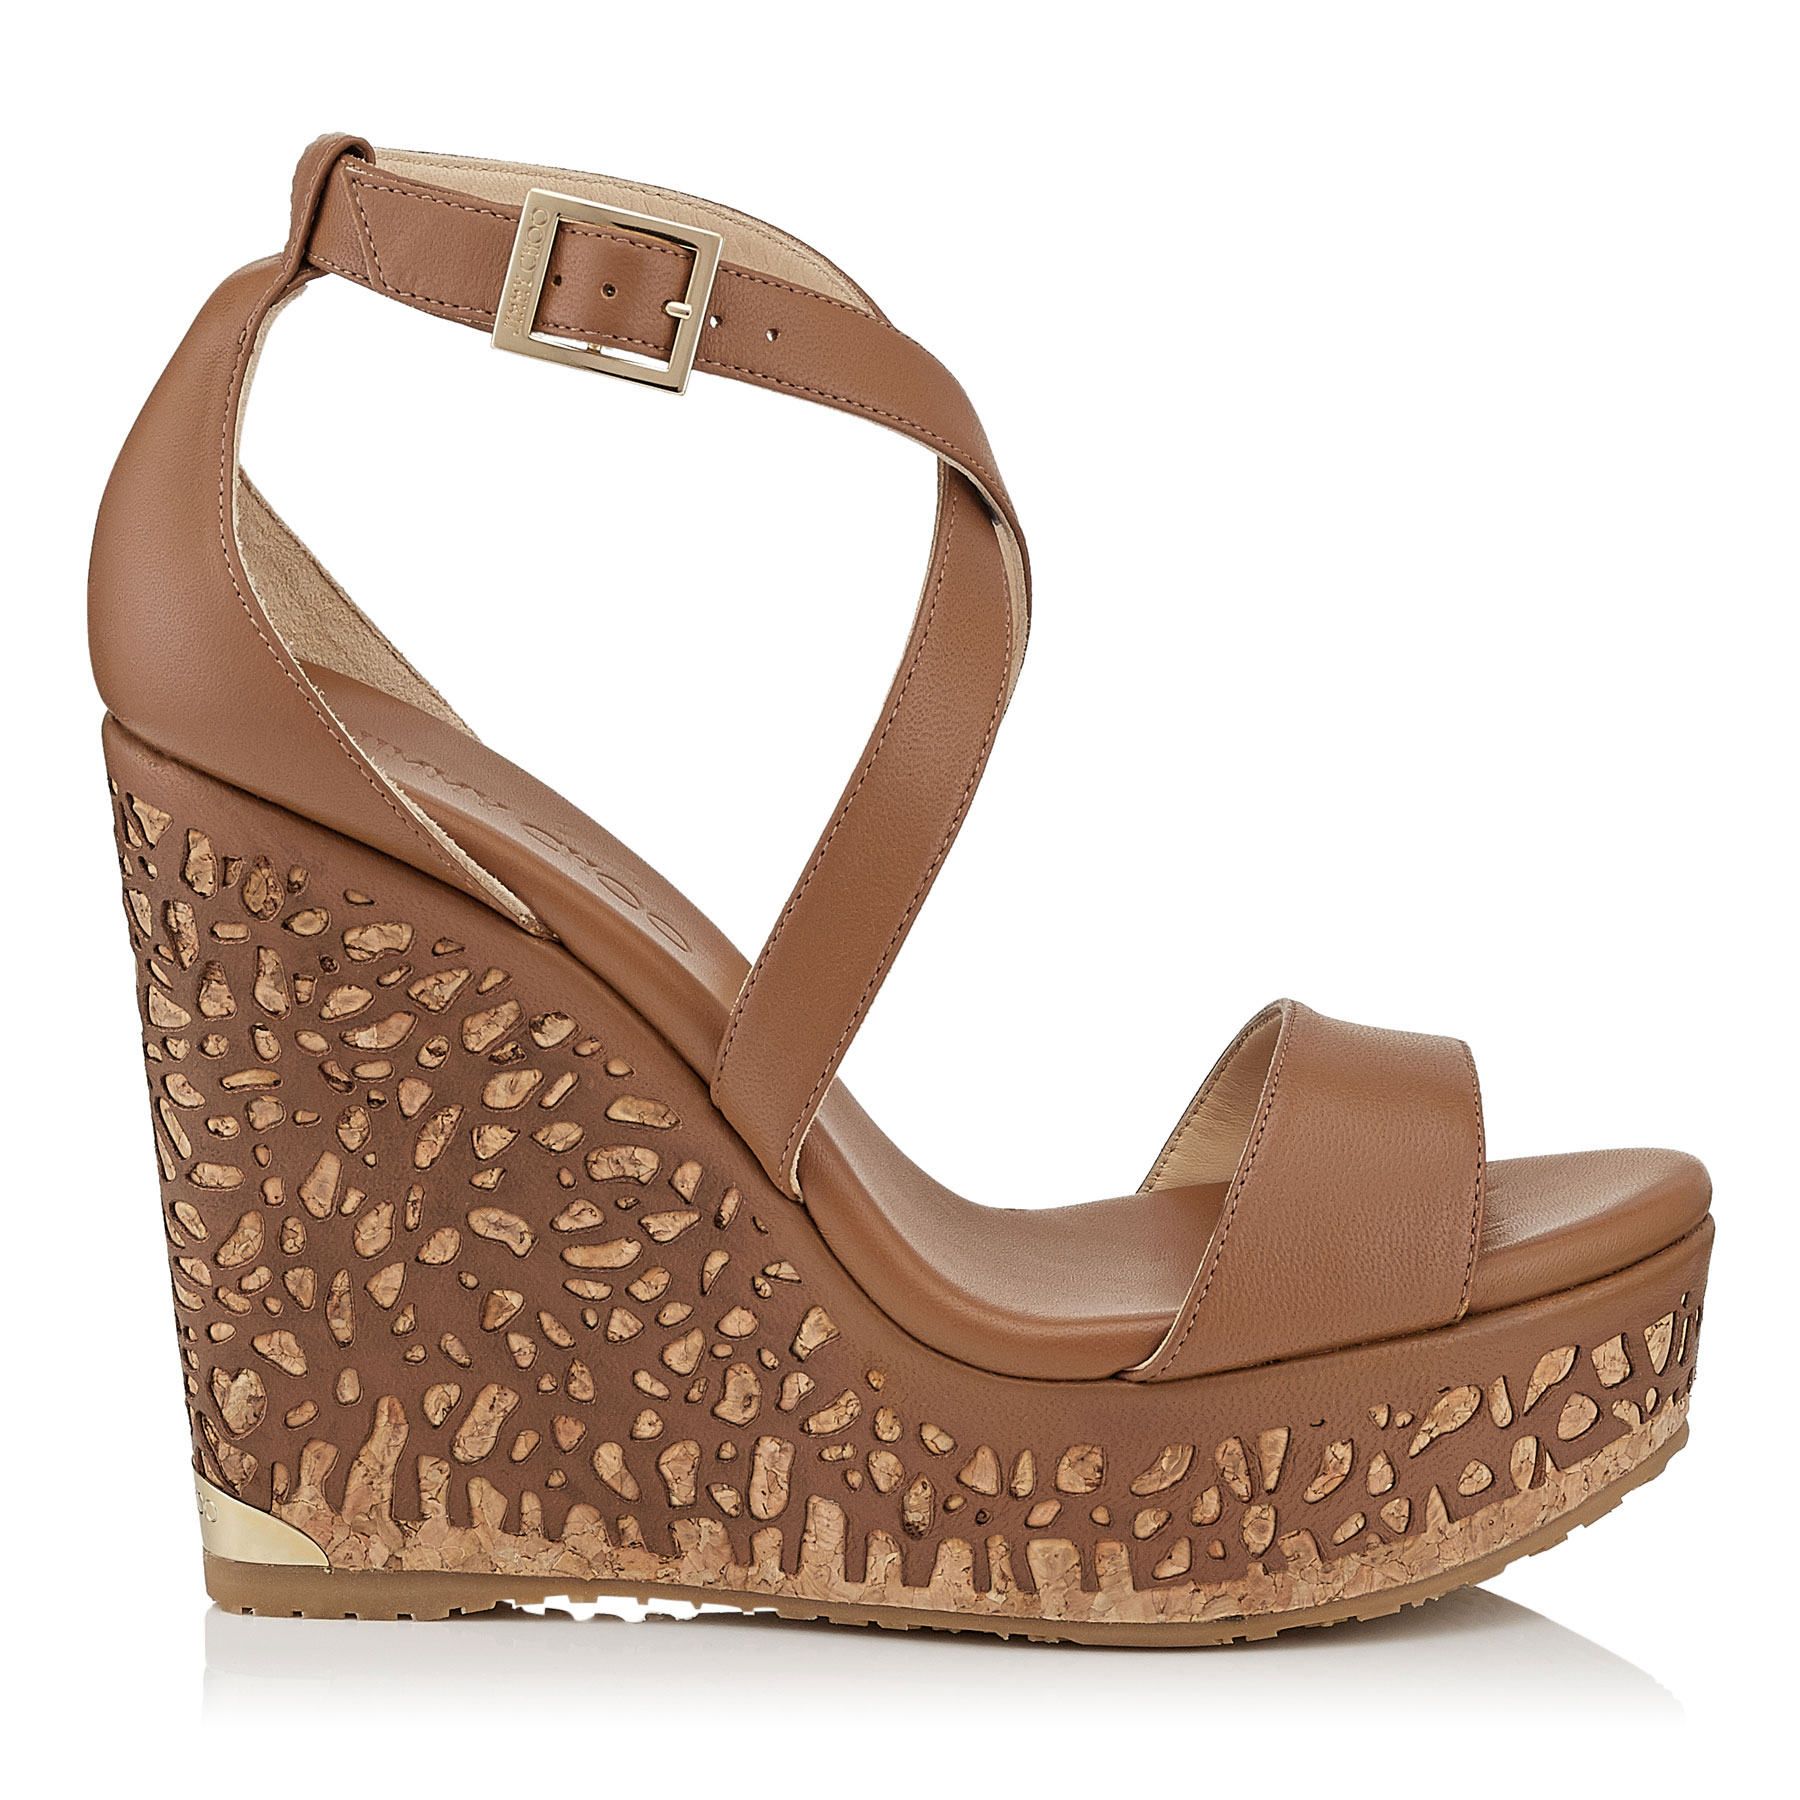 PORTIA 120 Canyon Leather Laser Perforated Cork Wedges